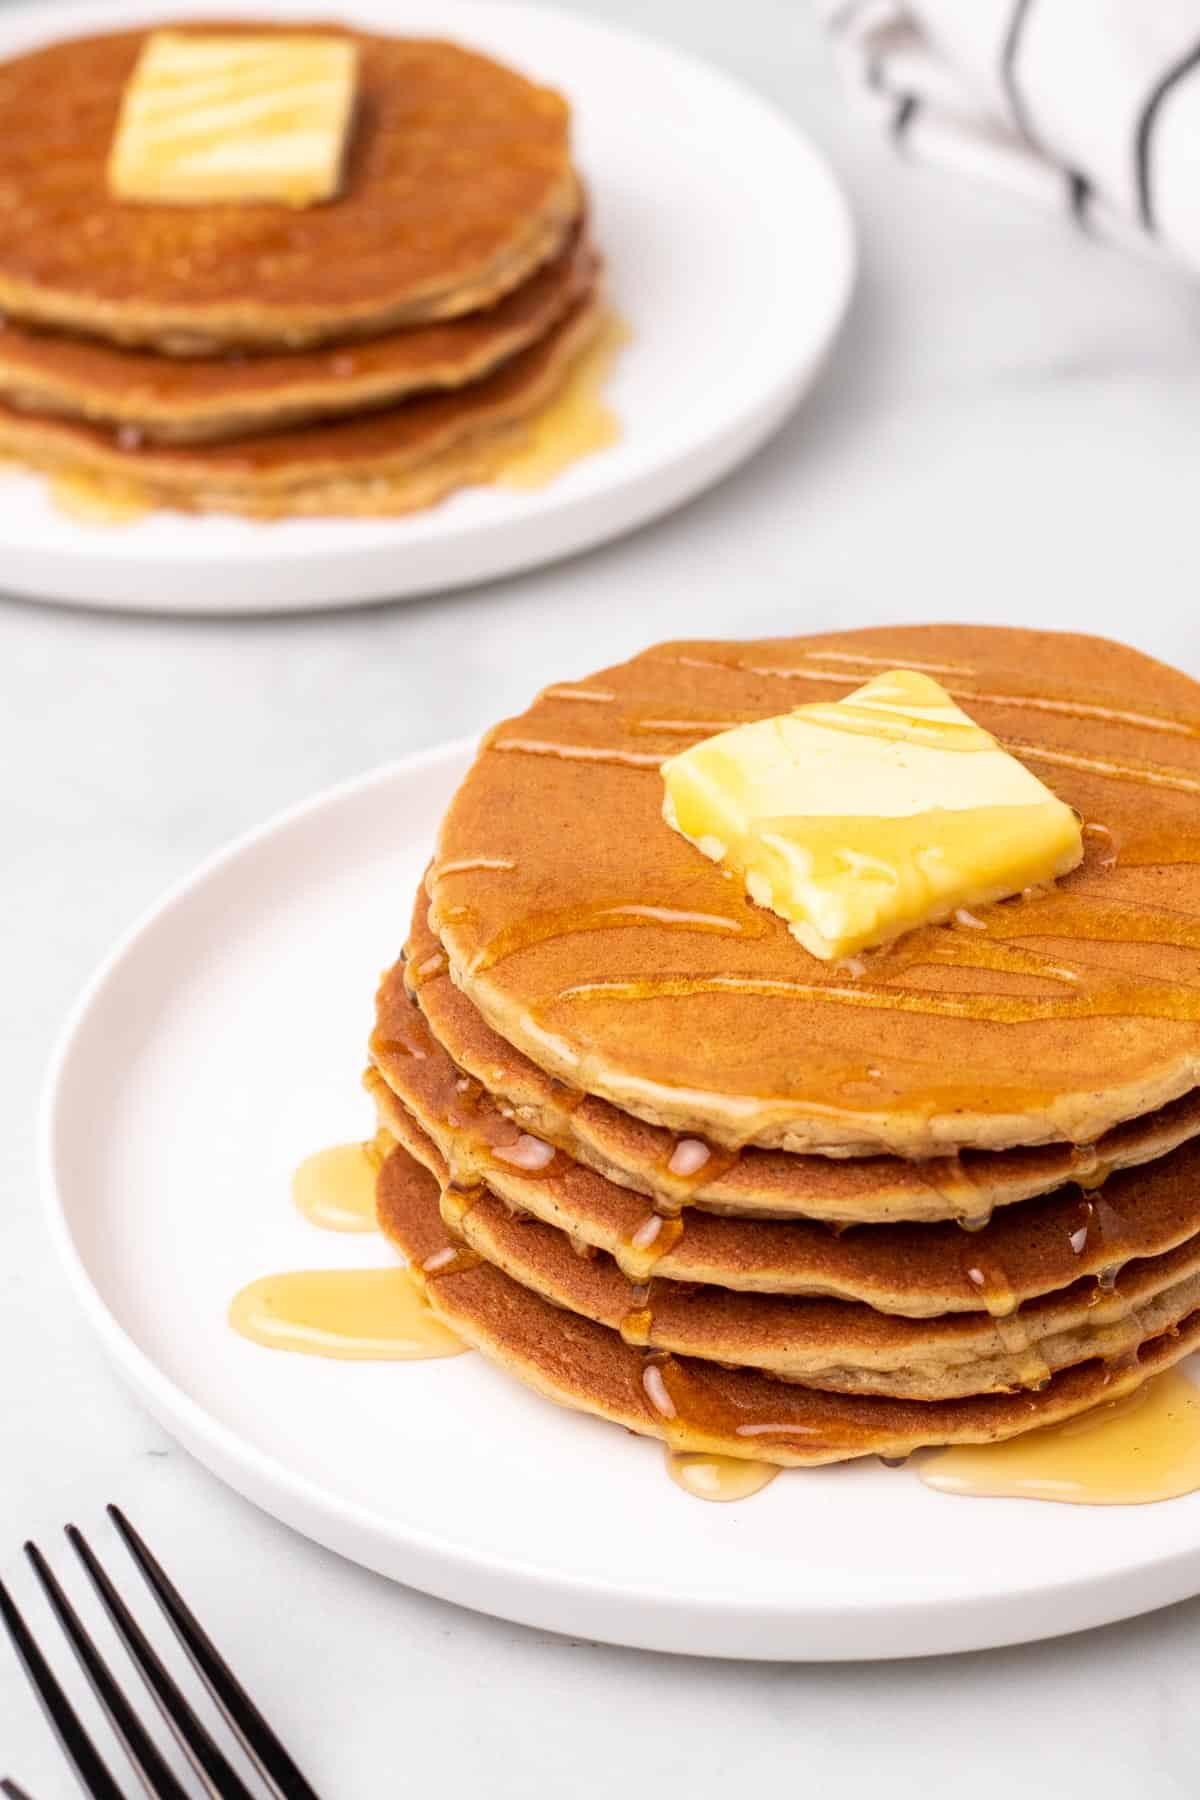 pancakes served with syrup and butter